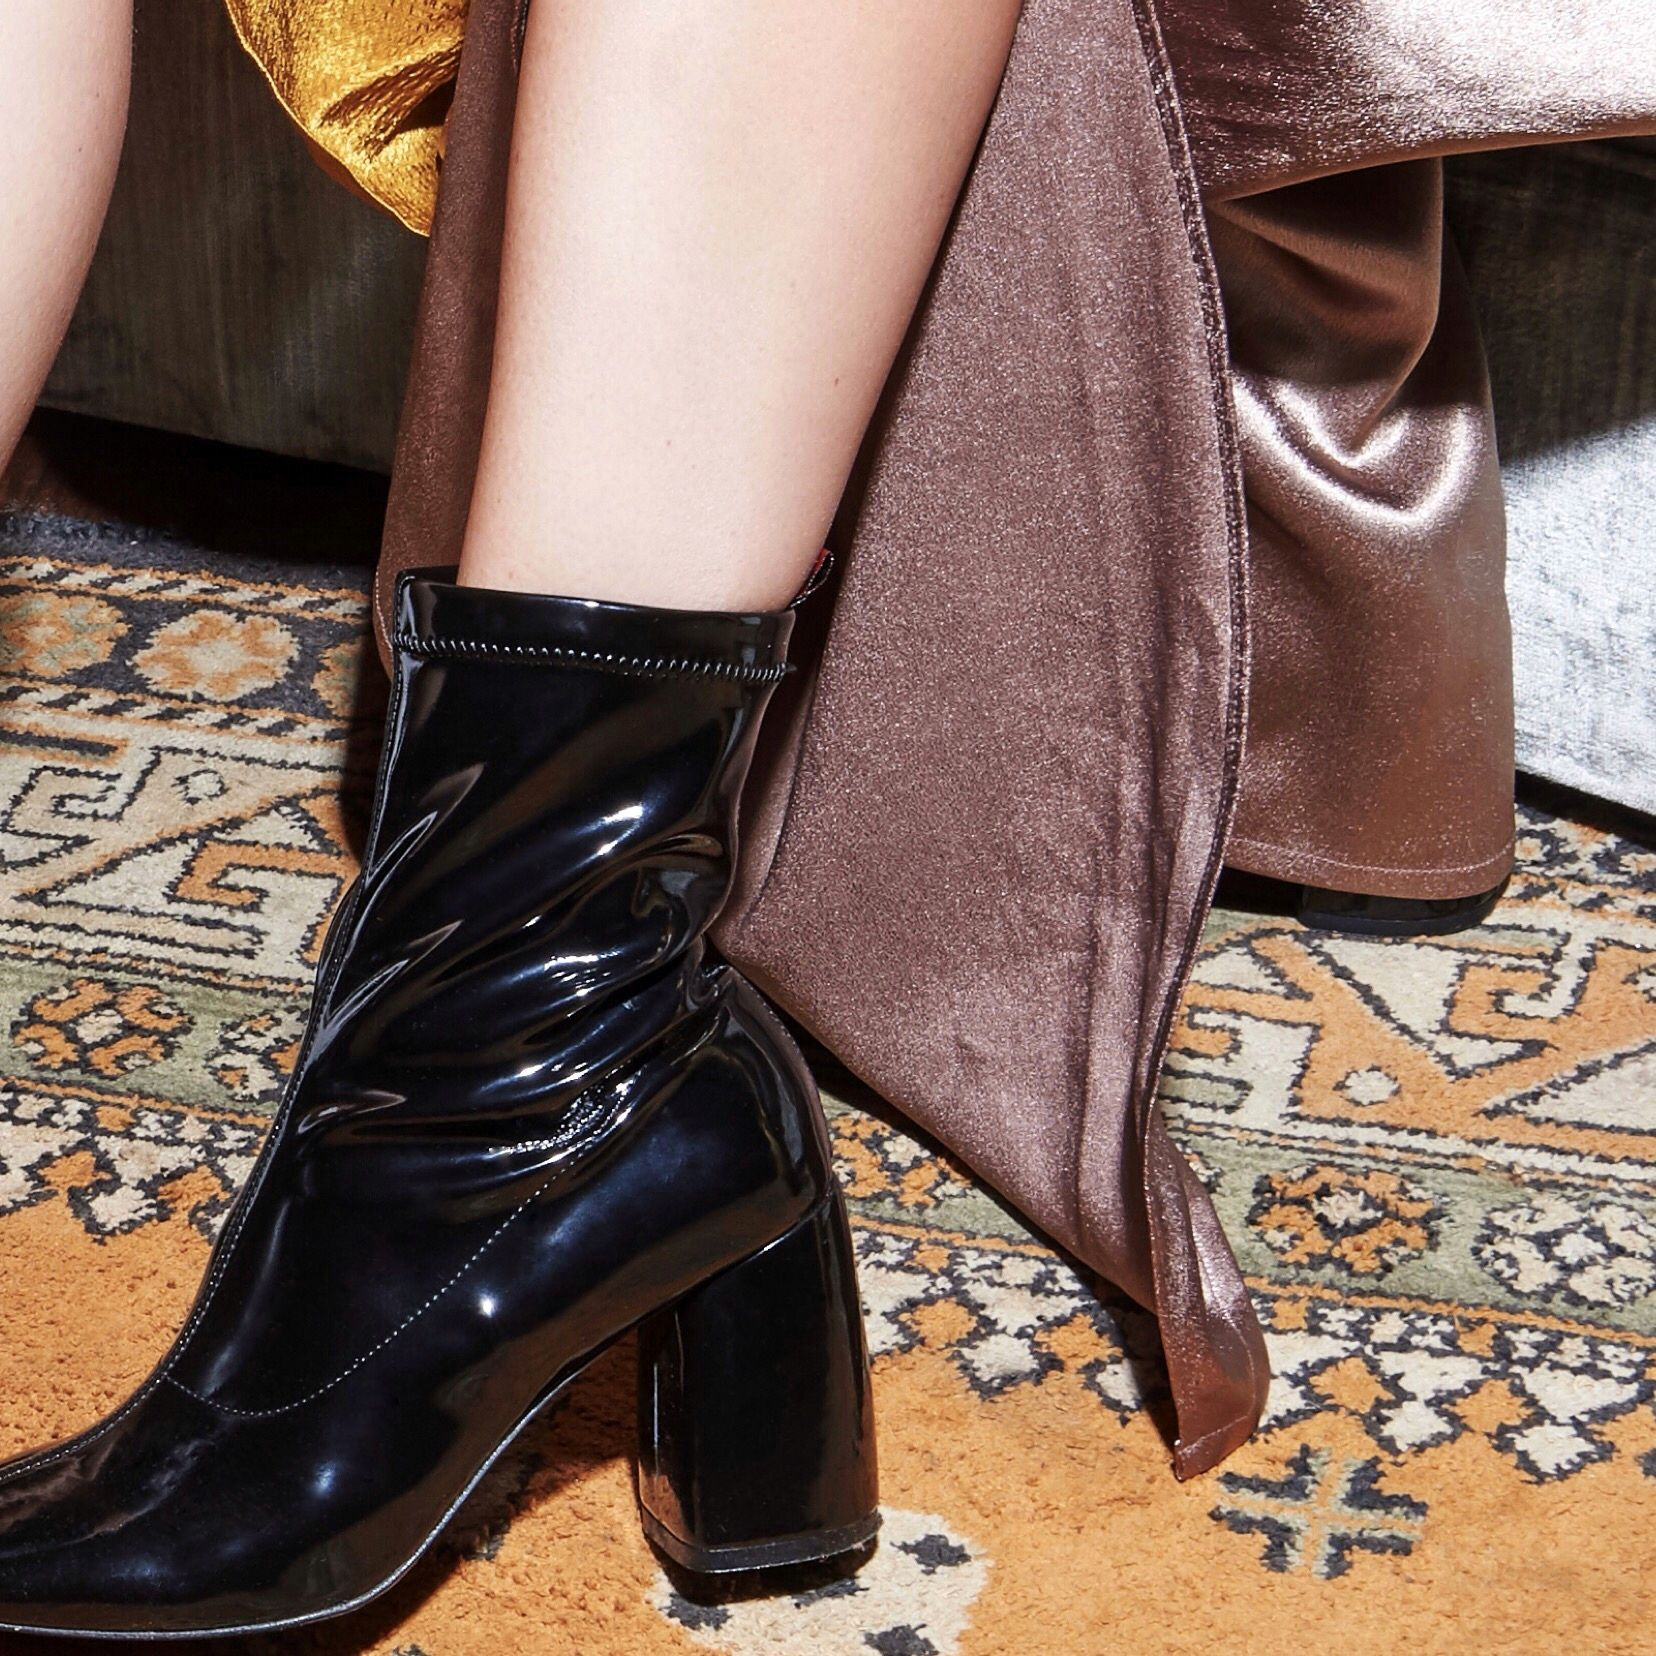 49ac19dd02 Meet #BellaMia stretch boot in patent leather, our very popular BellaDonna  boot's little sister. #daniellashevel